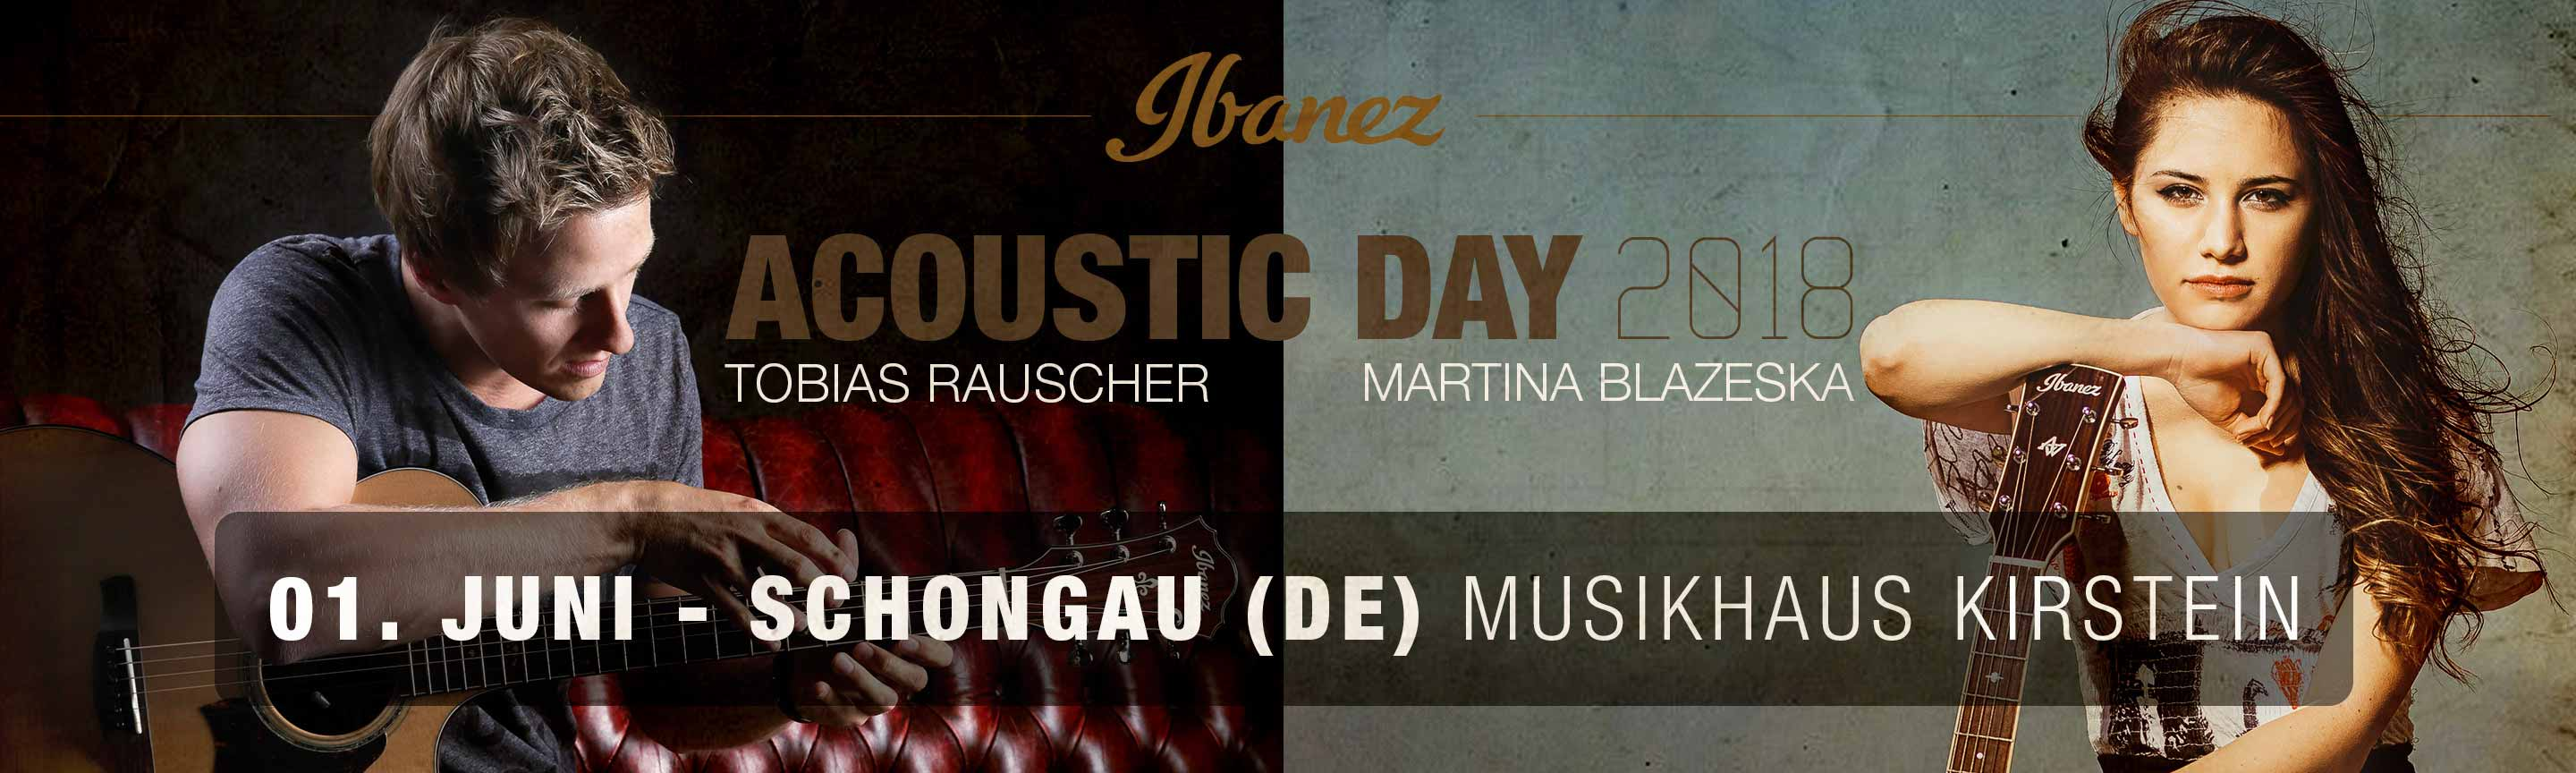 Ibanez Acoustic Day 2018